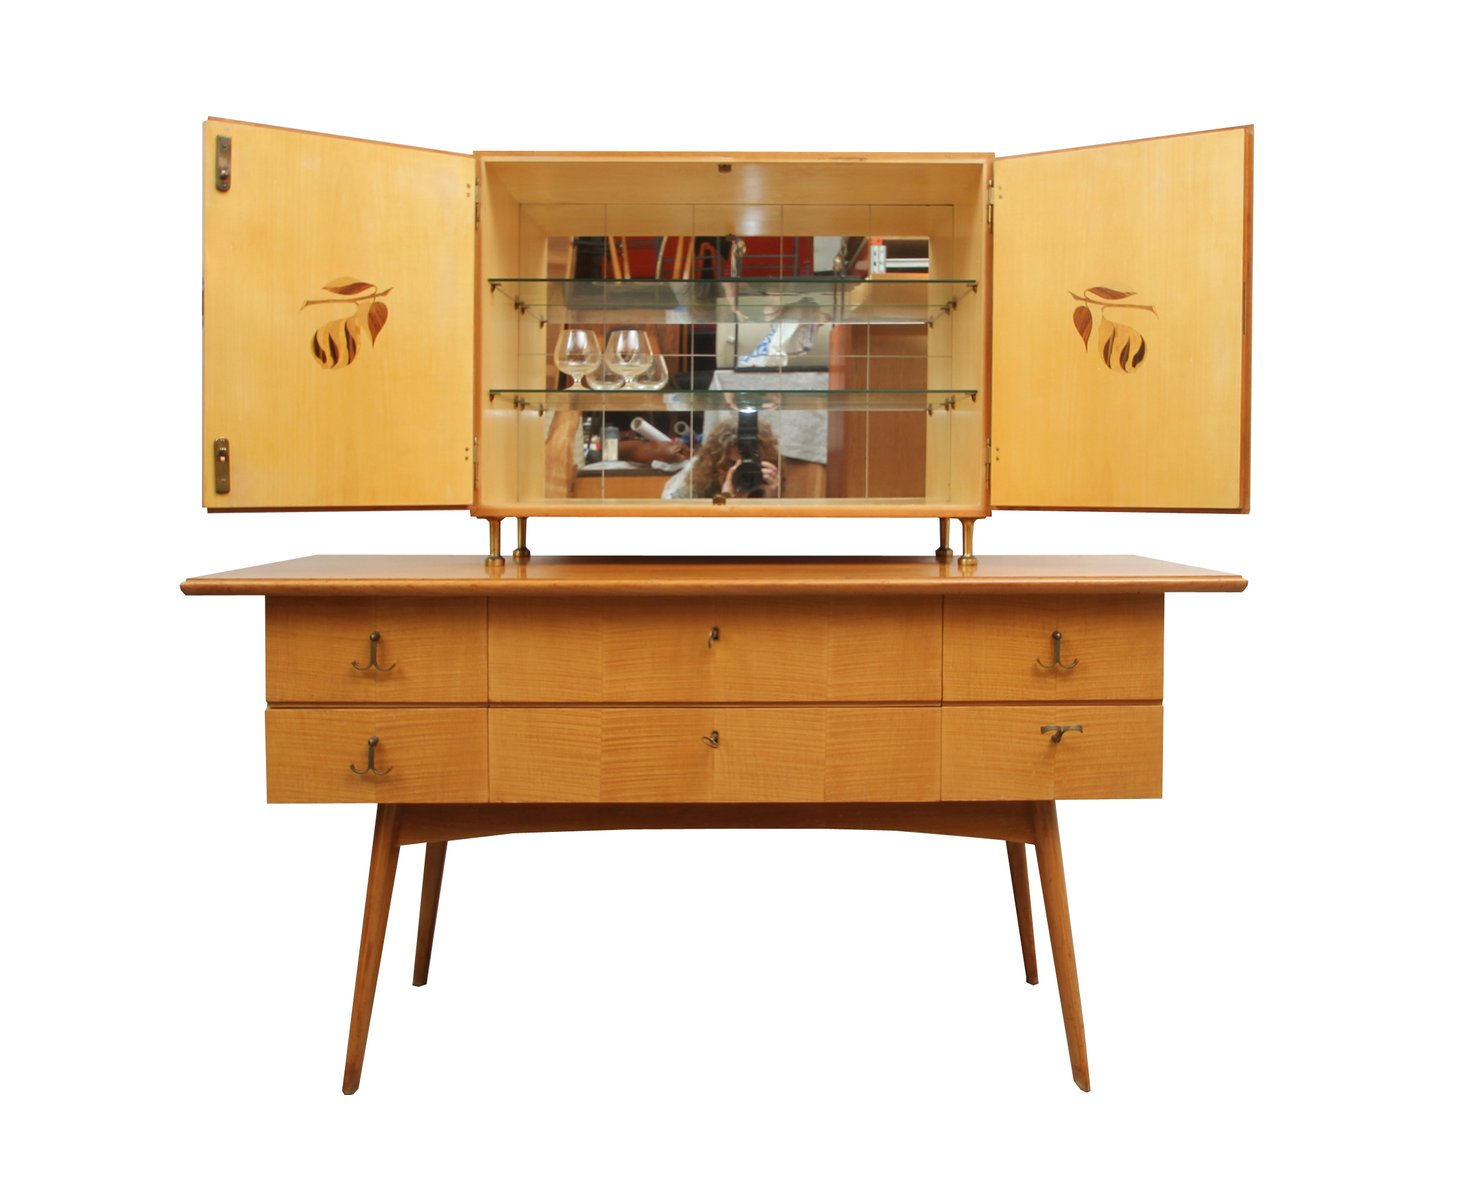 cherry wood sideboard and bar cabinet 1950s for sale at pamono. Black Bedroom Furniture Sets. Home Design Ideas